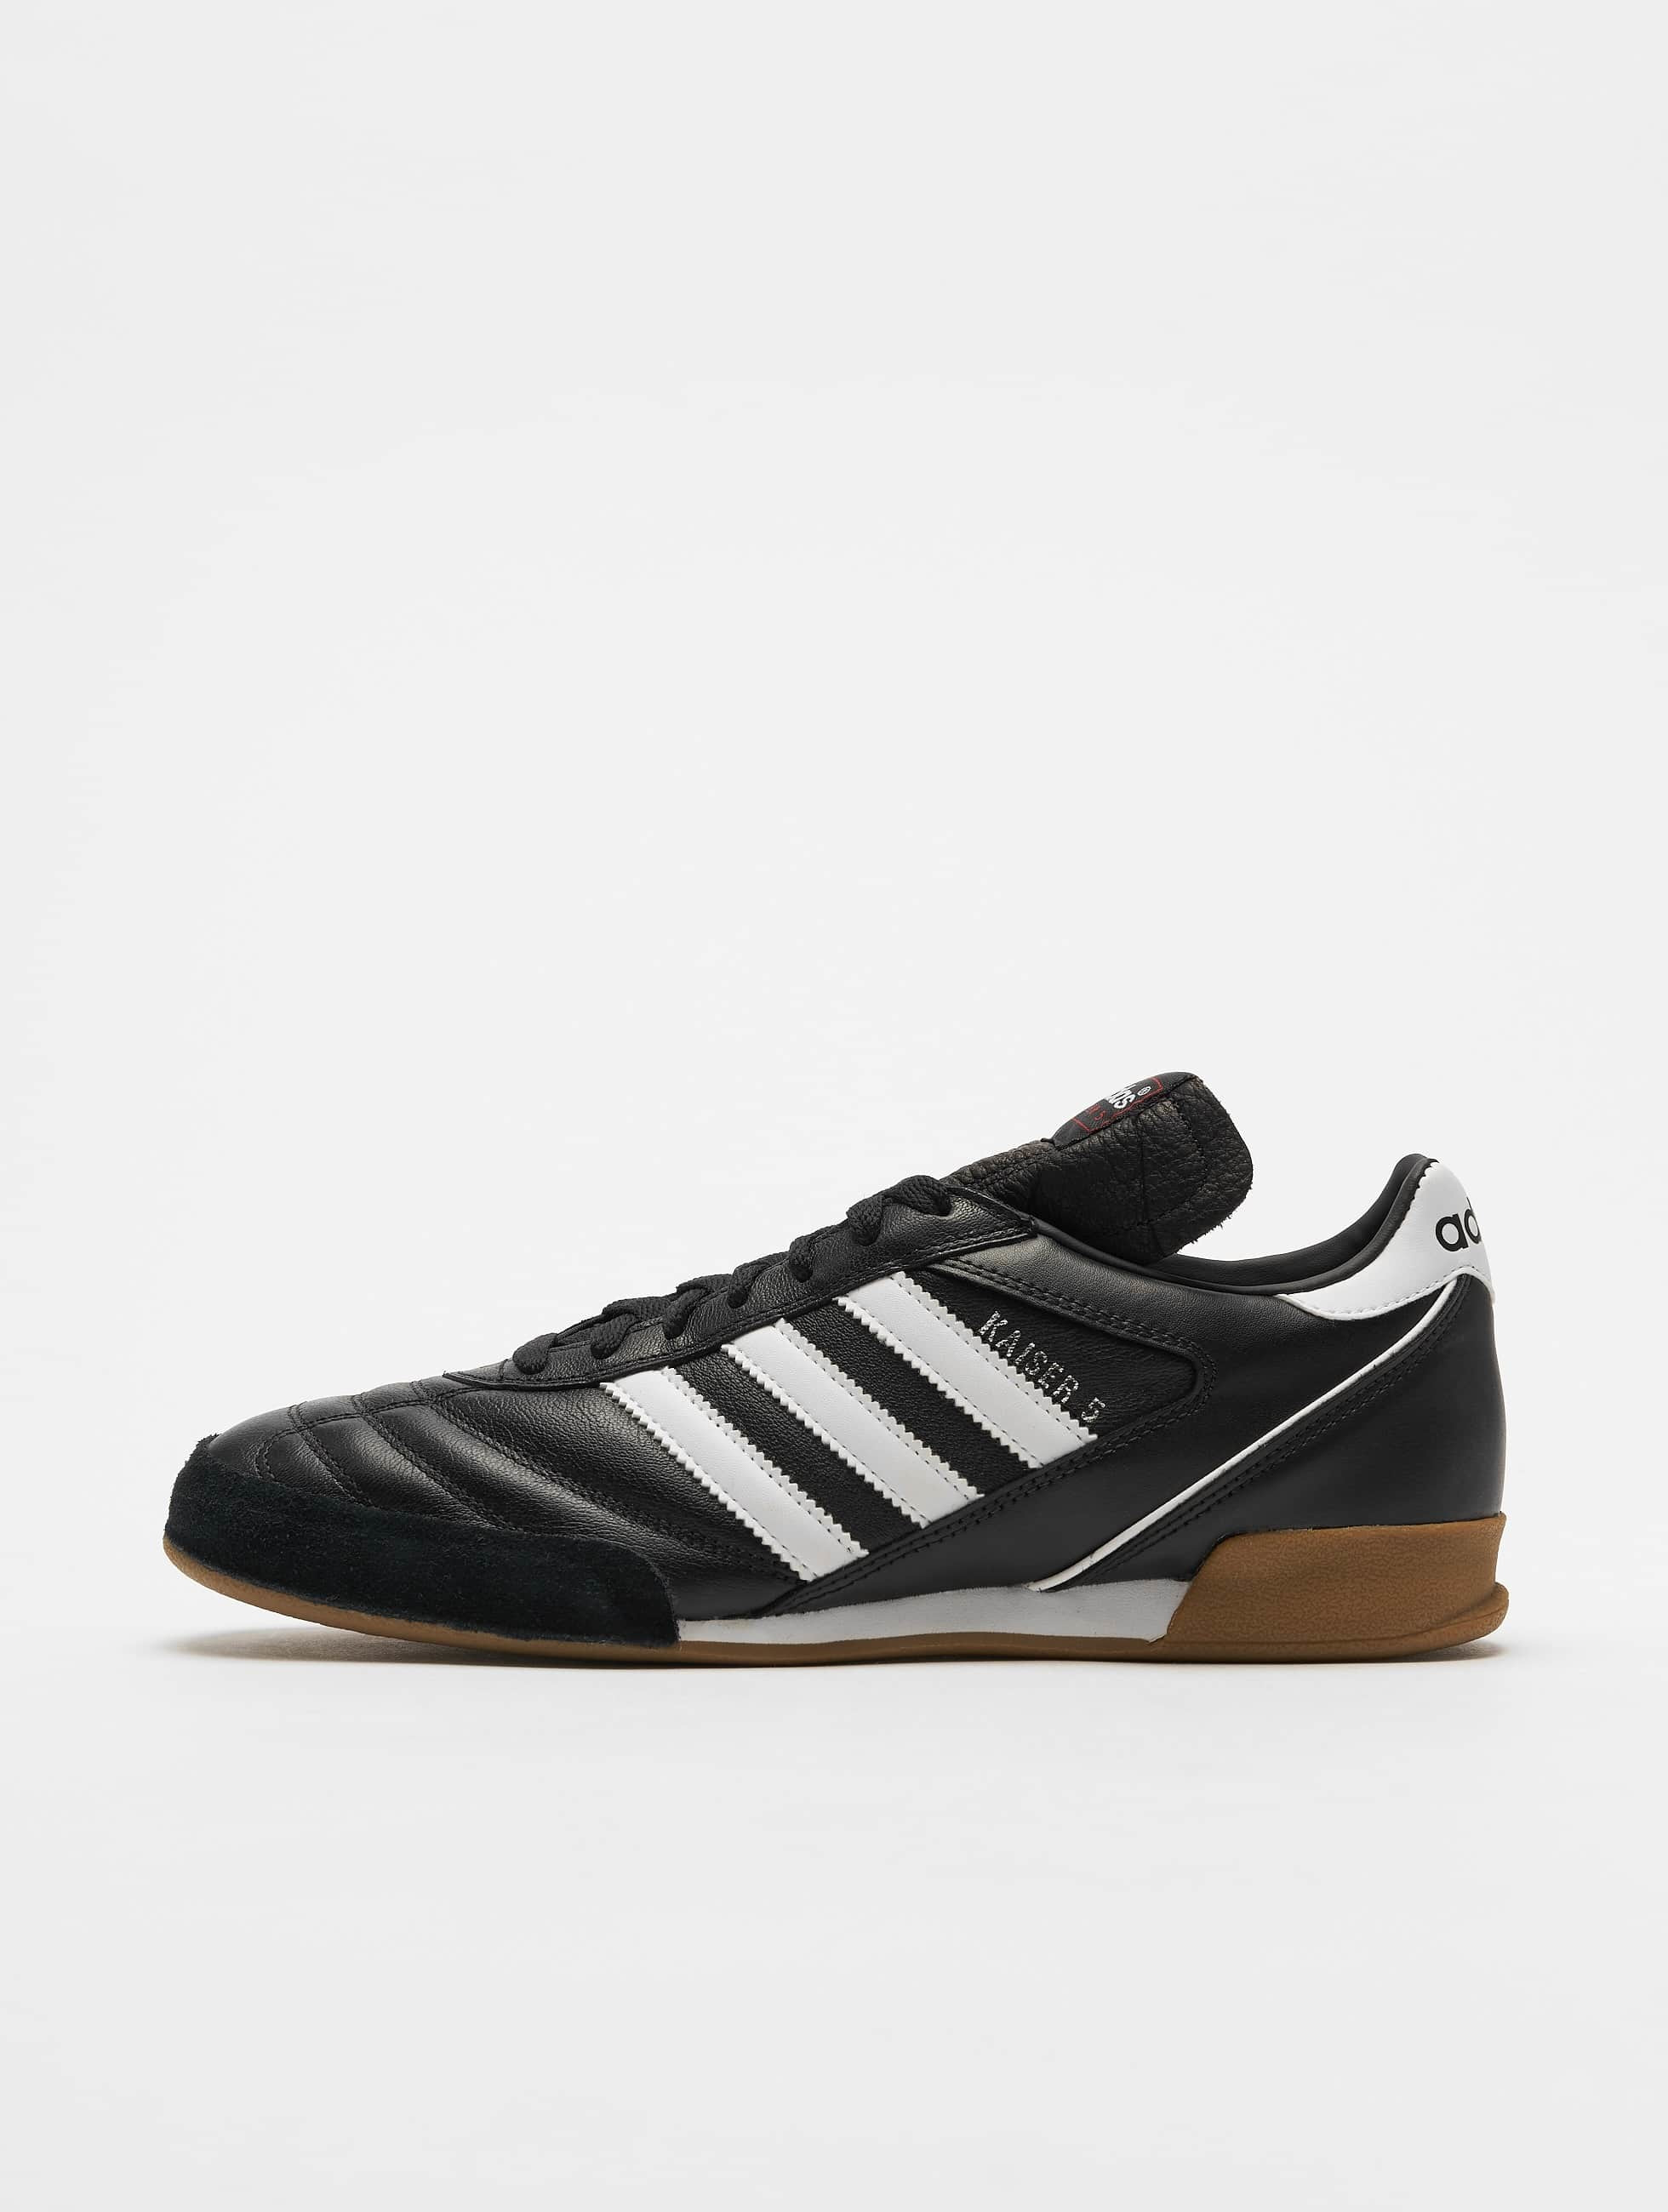 adidas Kaiser 5 Goal Indoor Soccer Shoes Black